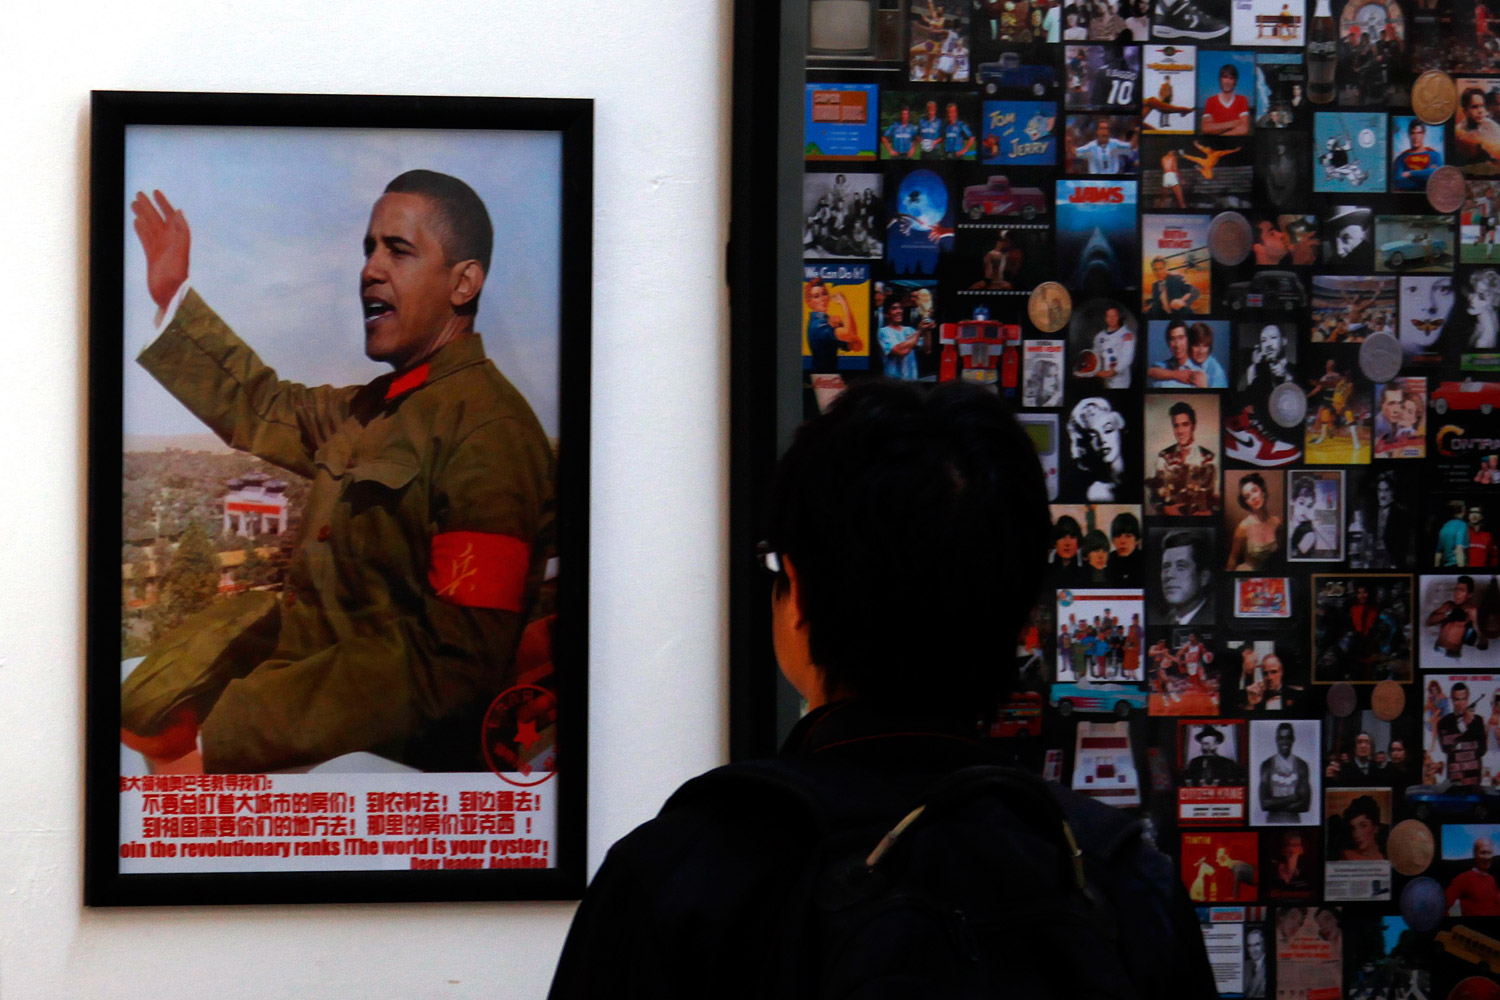 November 21, 2011. A visitor to a gallery located in the art district of Beijing known as '798' looks at a work on display showing the head of U.S. President Barack Obama superimposed onto the body of former Chinese chairman Mao Zedong.